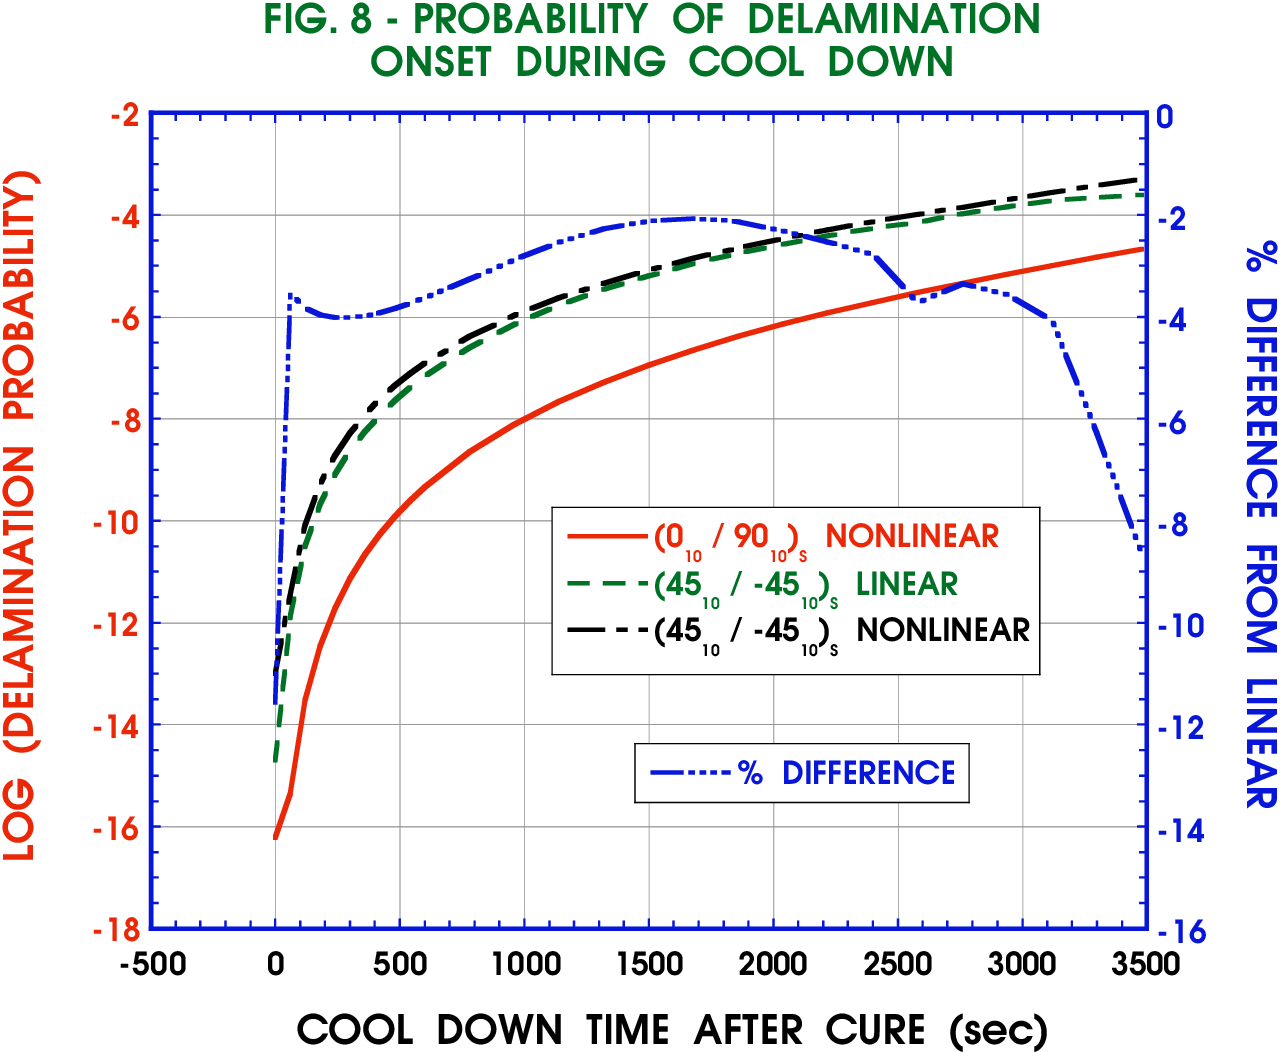 FIG. 8 - PROBABILITY OF DELAMINATION ONSET DURING COOL DOWN